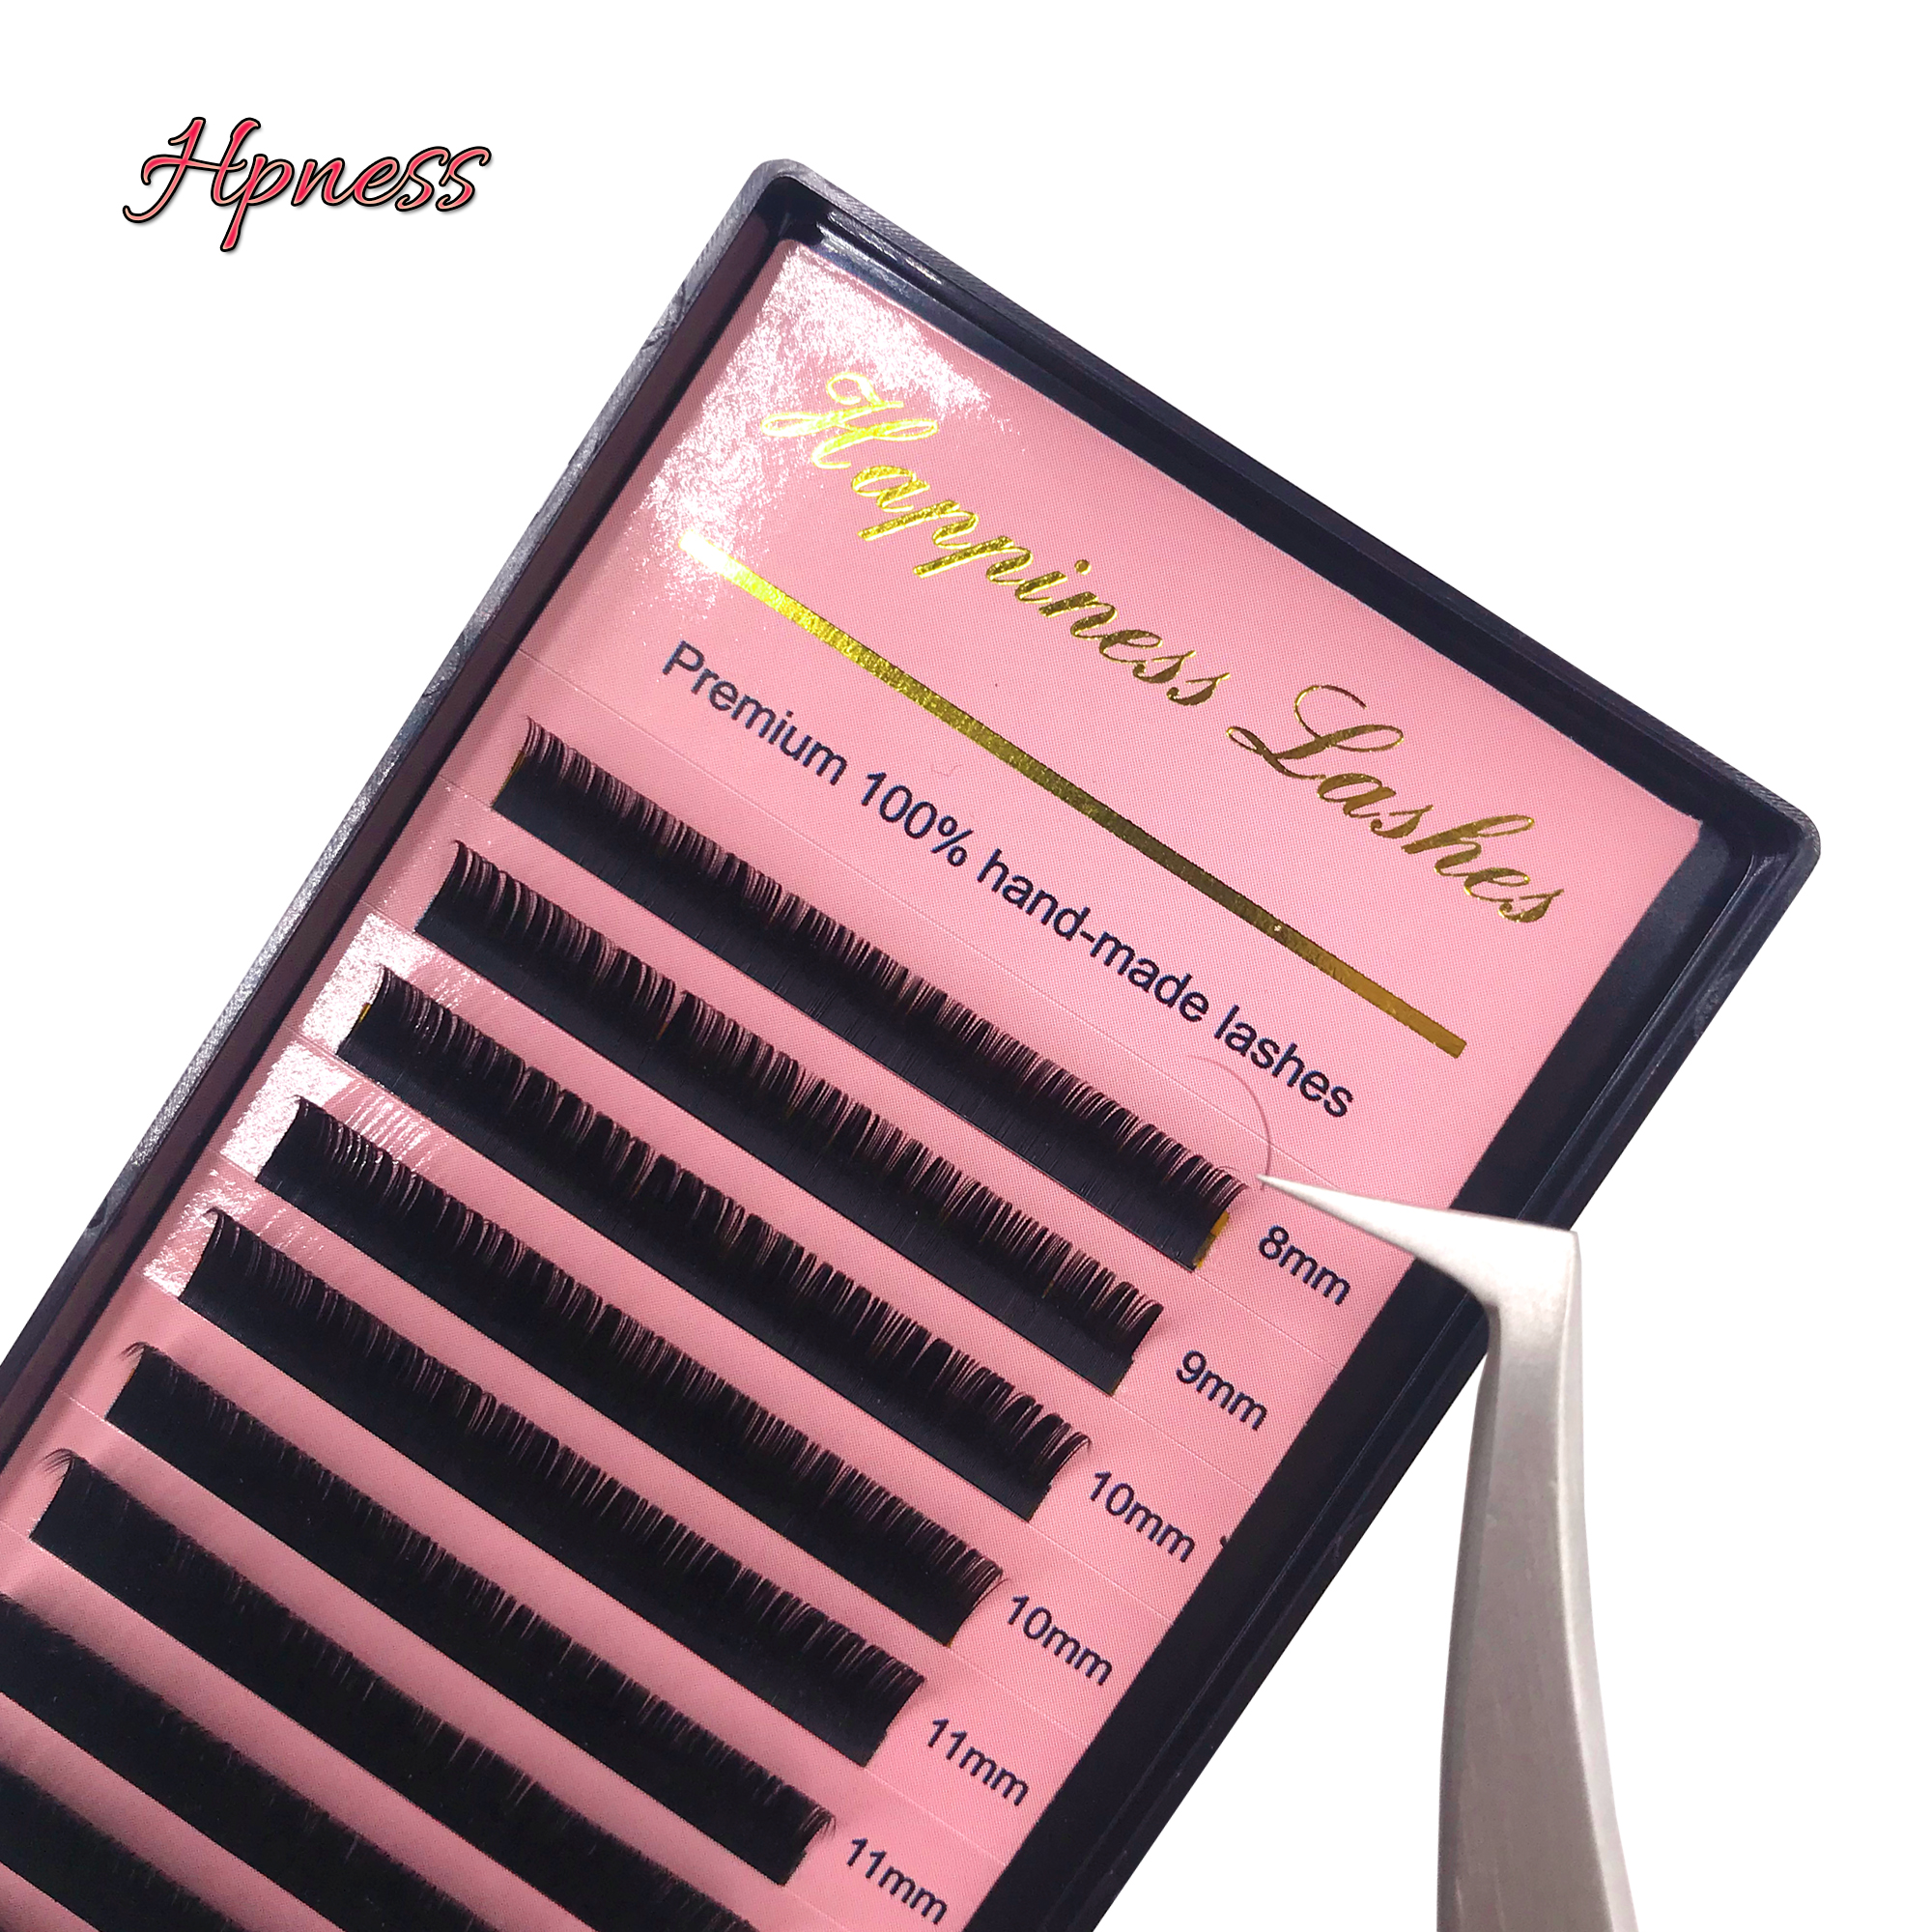 Eye Lash Extension Individual Eyelash Silk Mink Lashes Extension 10 Trays Lot Classic Soft Lashes All Sizes HPNESS in False Eyelashes from Beauty Health